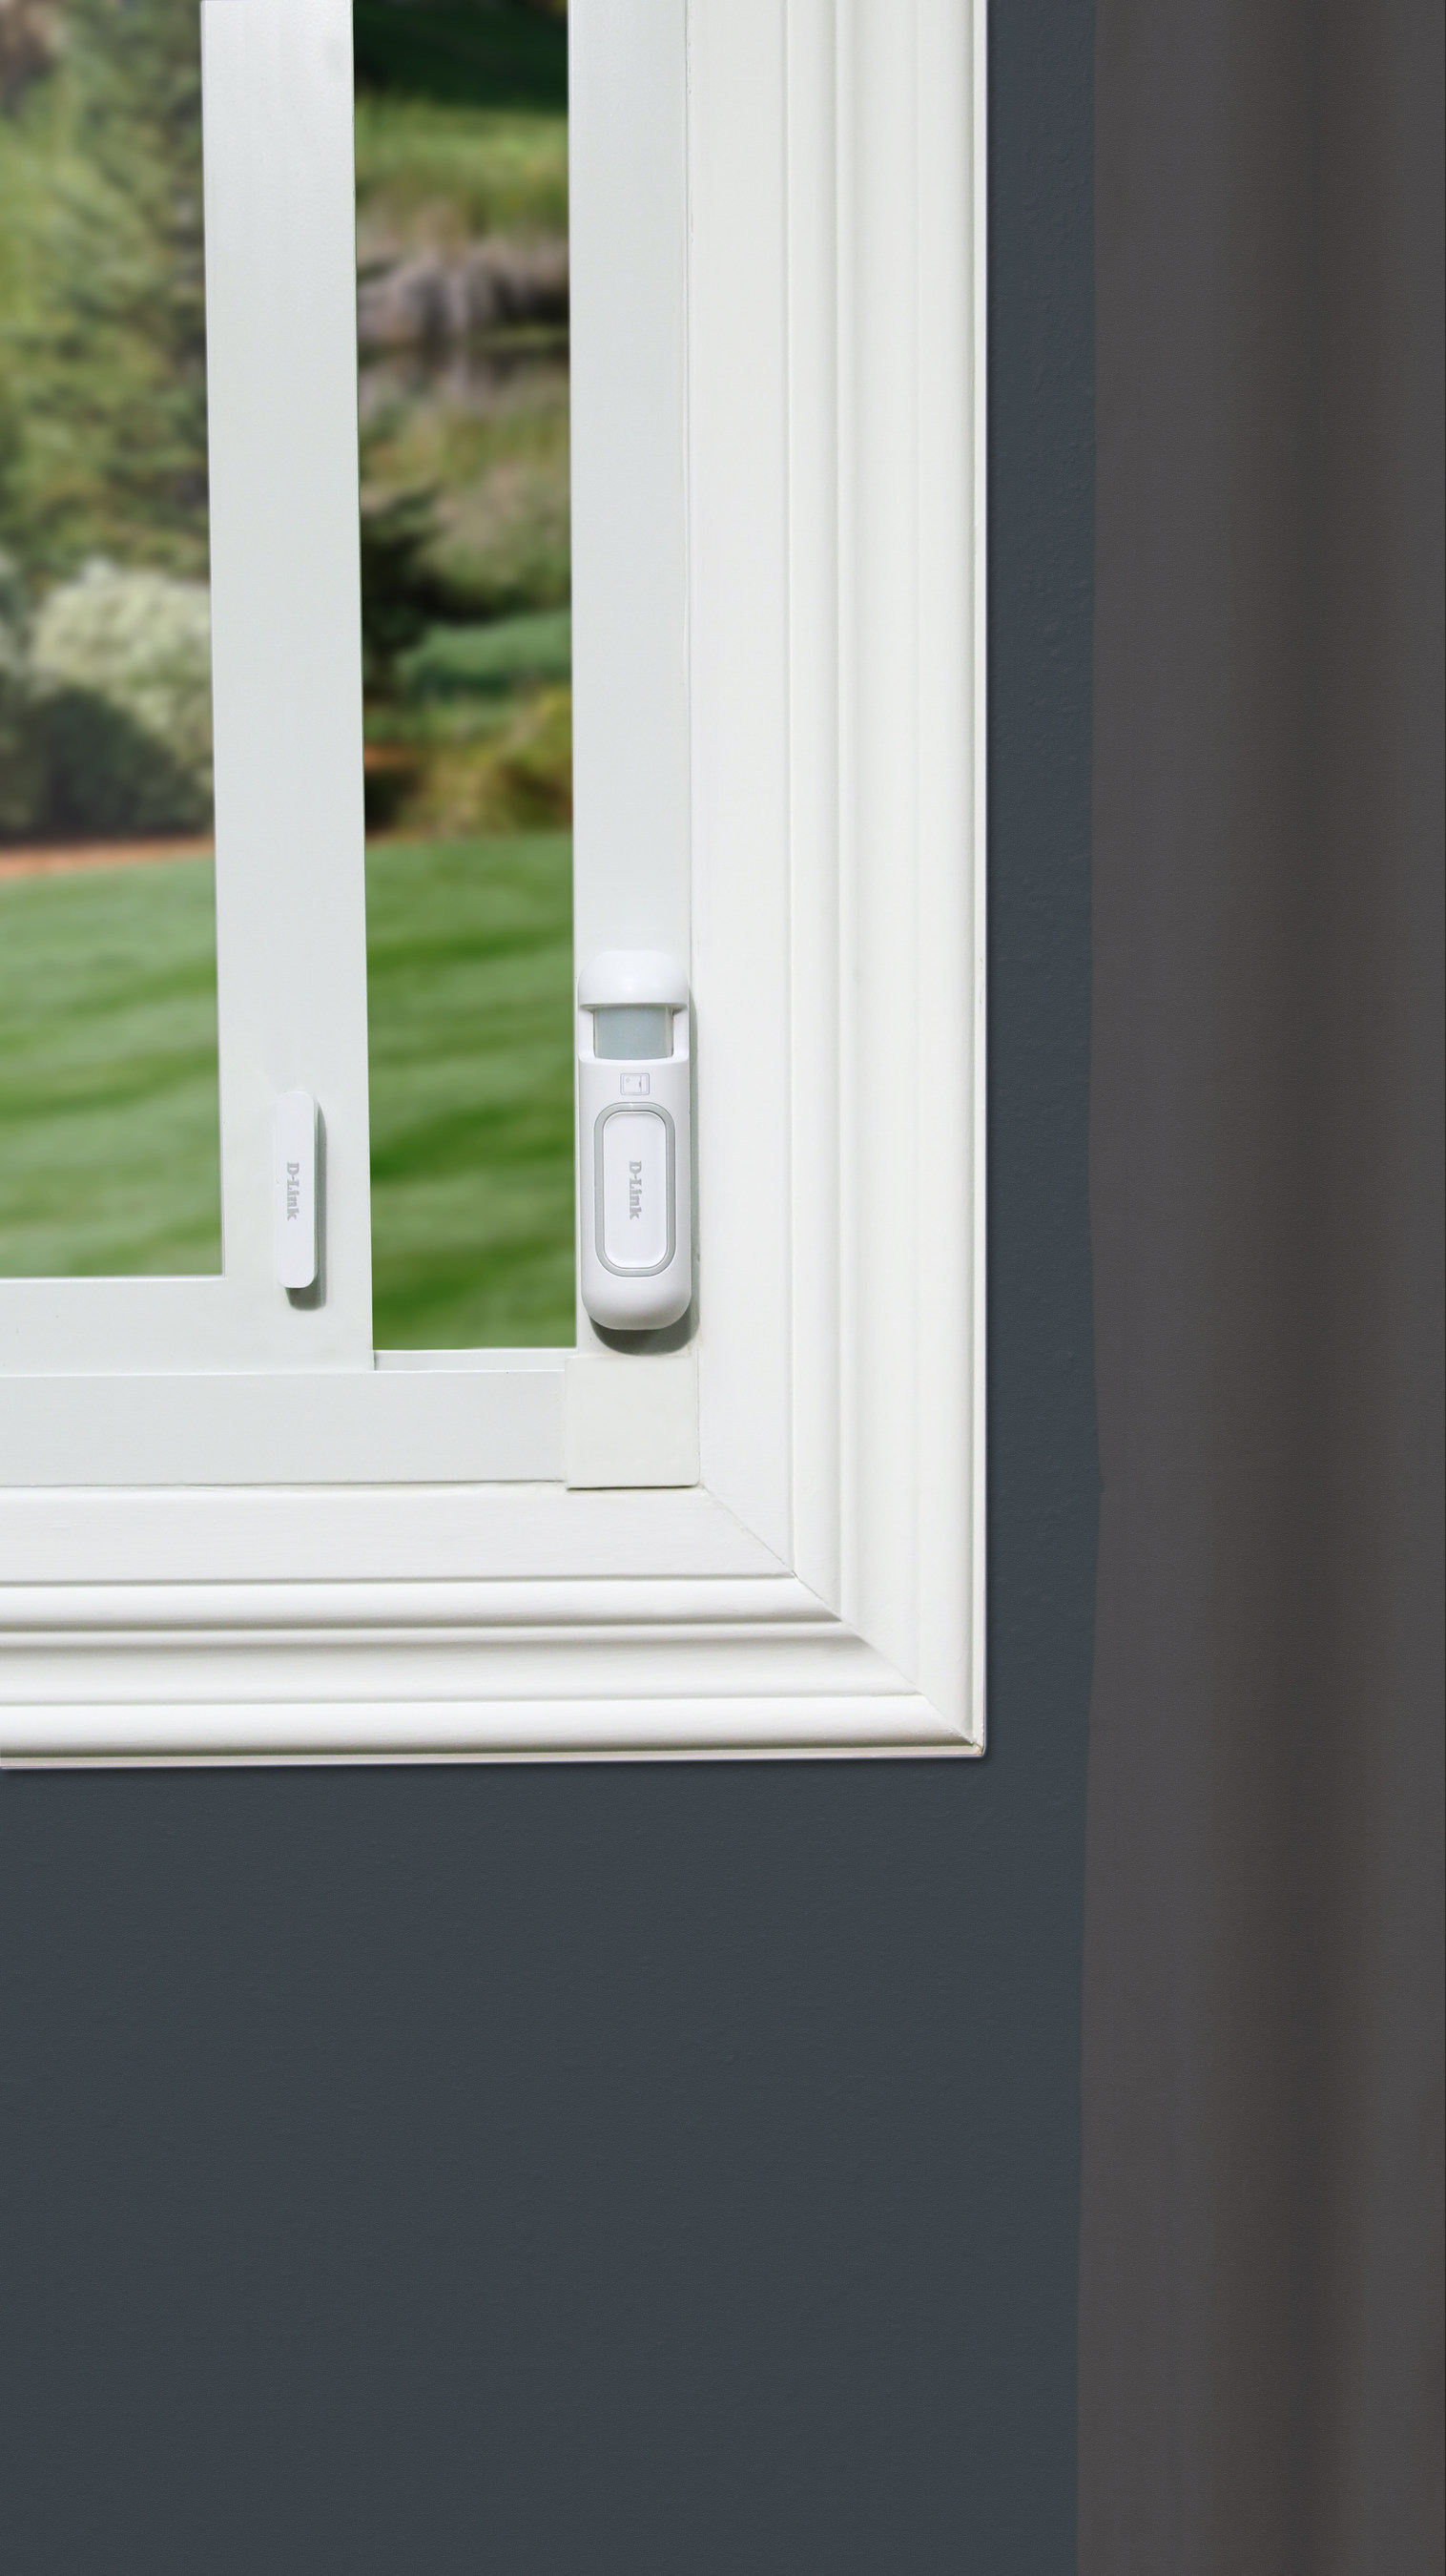 D-Link's latest DCH-Z110 detects when doors or windows are opened, alerting users with push notifications sent directly to their mobile device